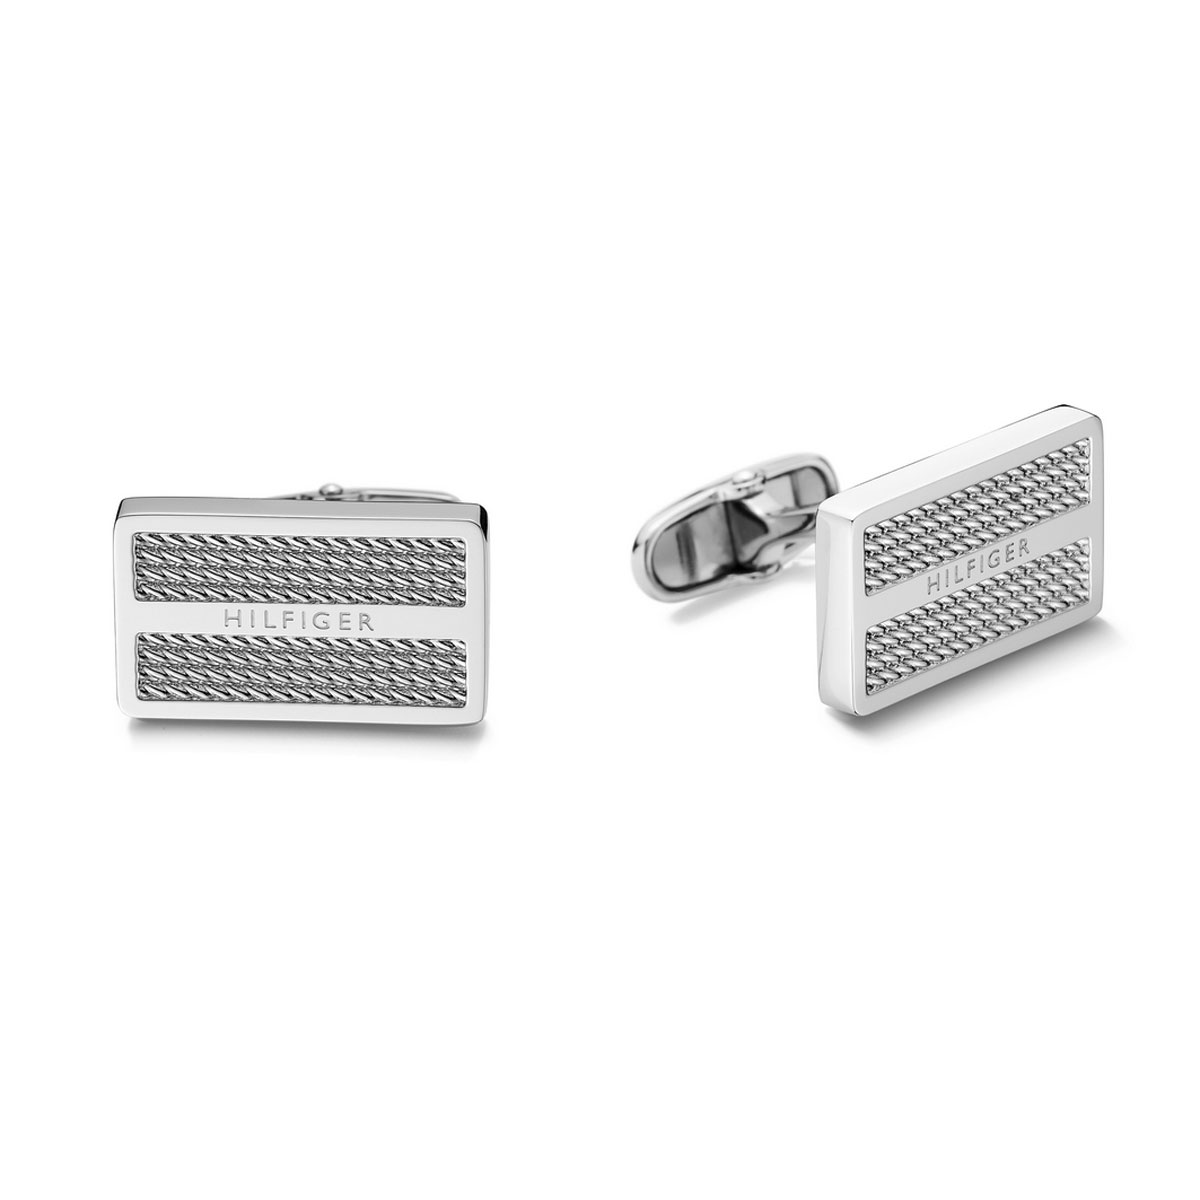 8df7364e Tommy Hilfiger stainless steel cufflinks 2700825. Tap to expand